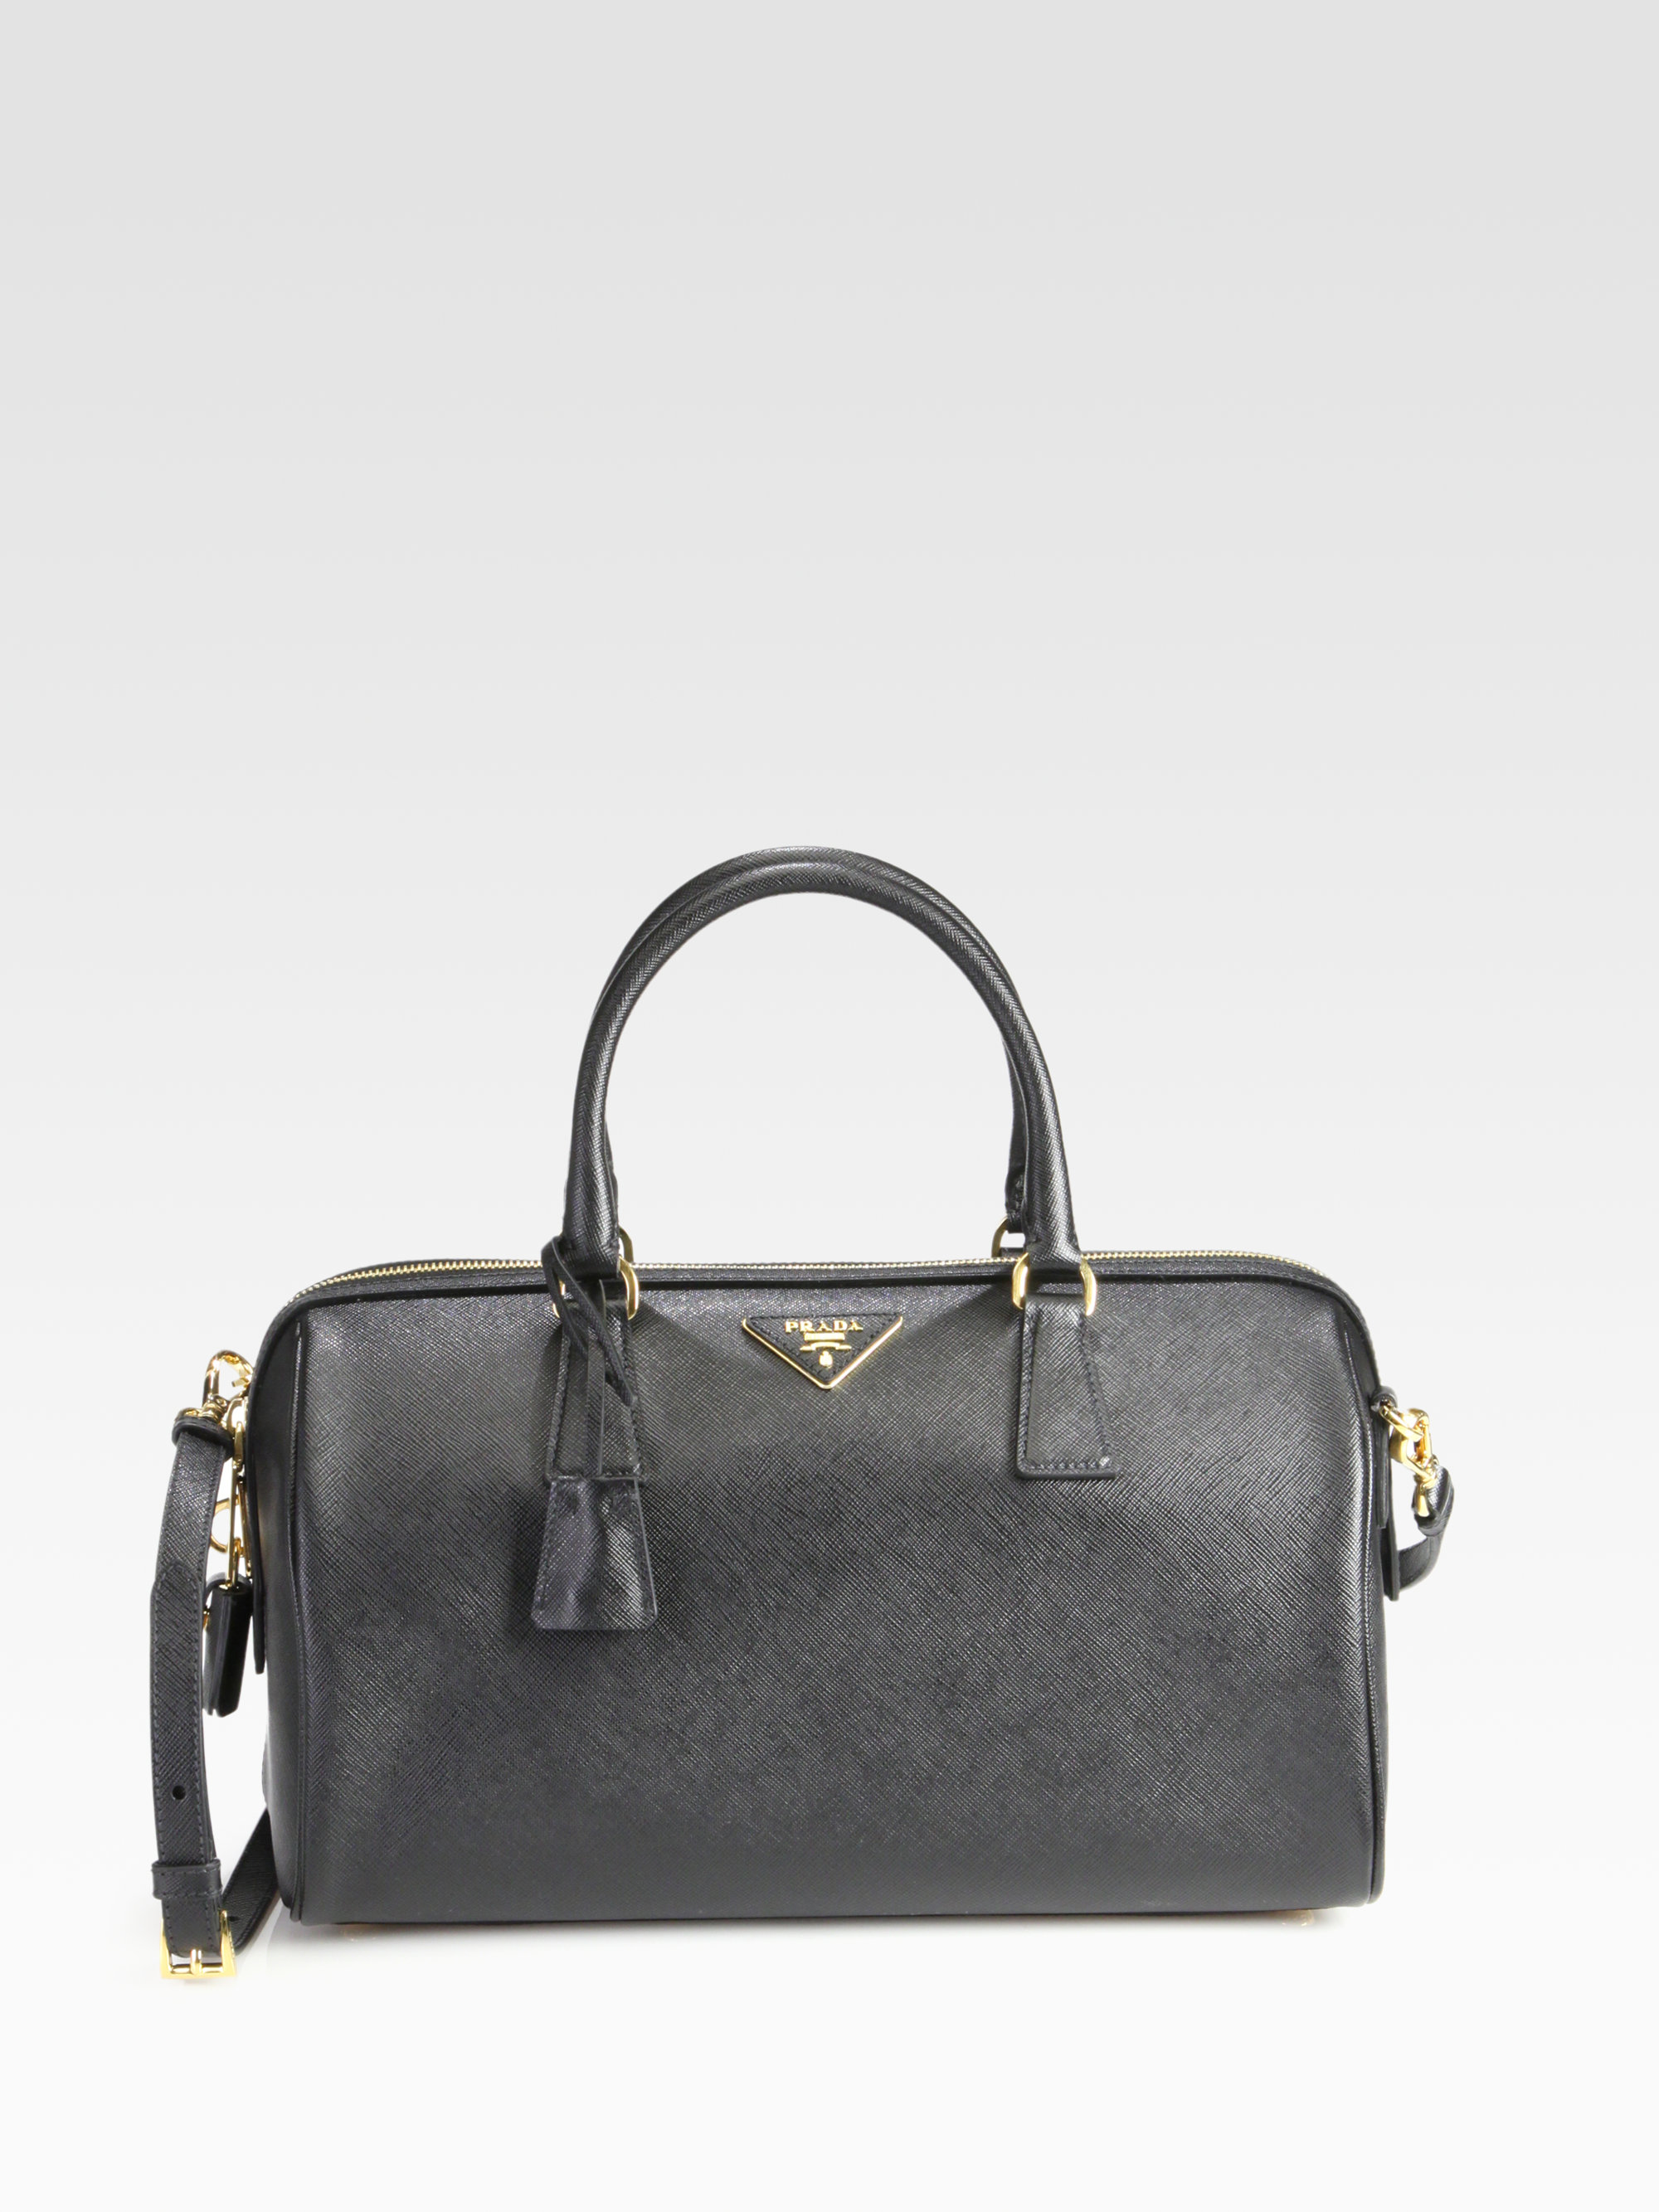 58c734e76973 ... tophandle bag in red 24662 06be9; purchase lyst prada convertible  saffiano lux boston bag in black 25186 95af8